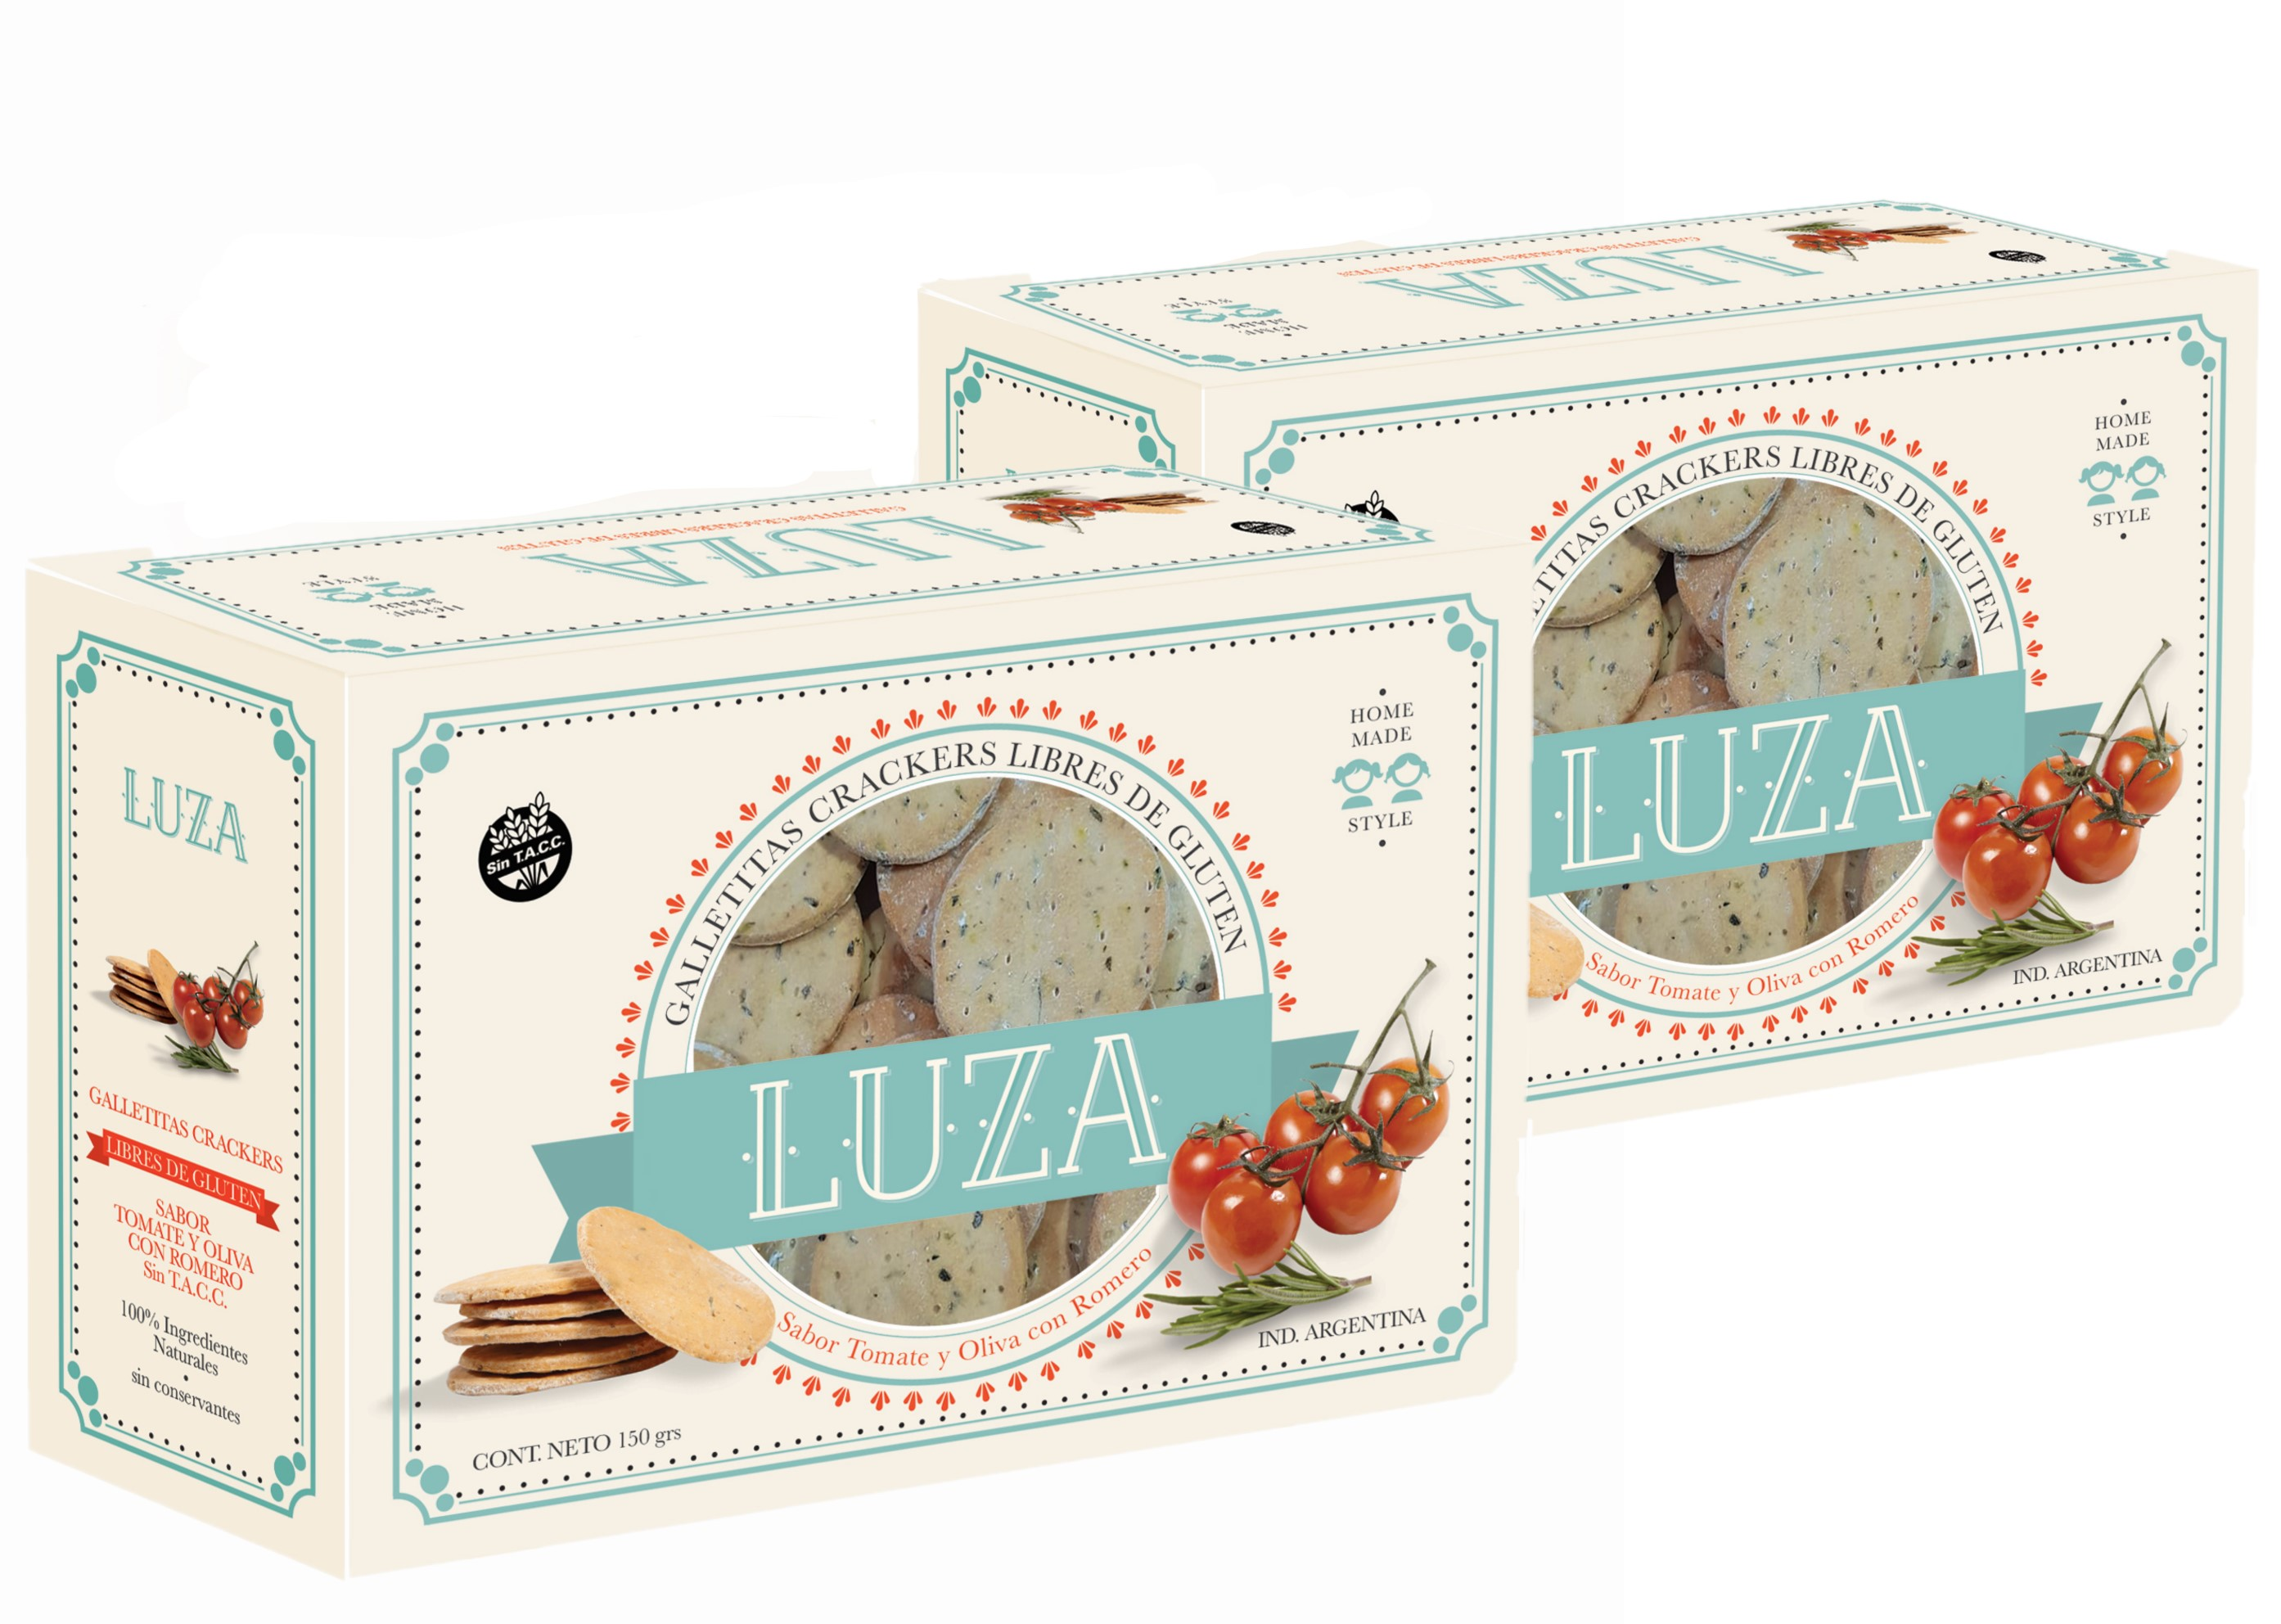 PROMO 2X1 crackers sabor tomate